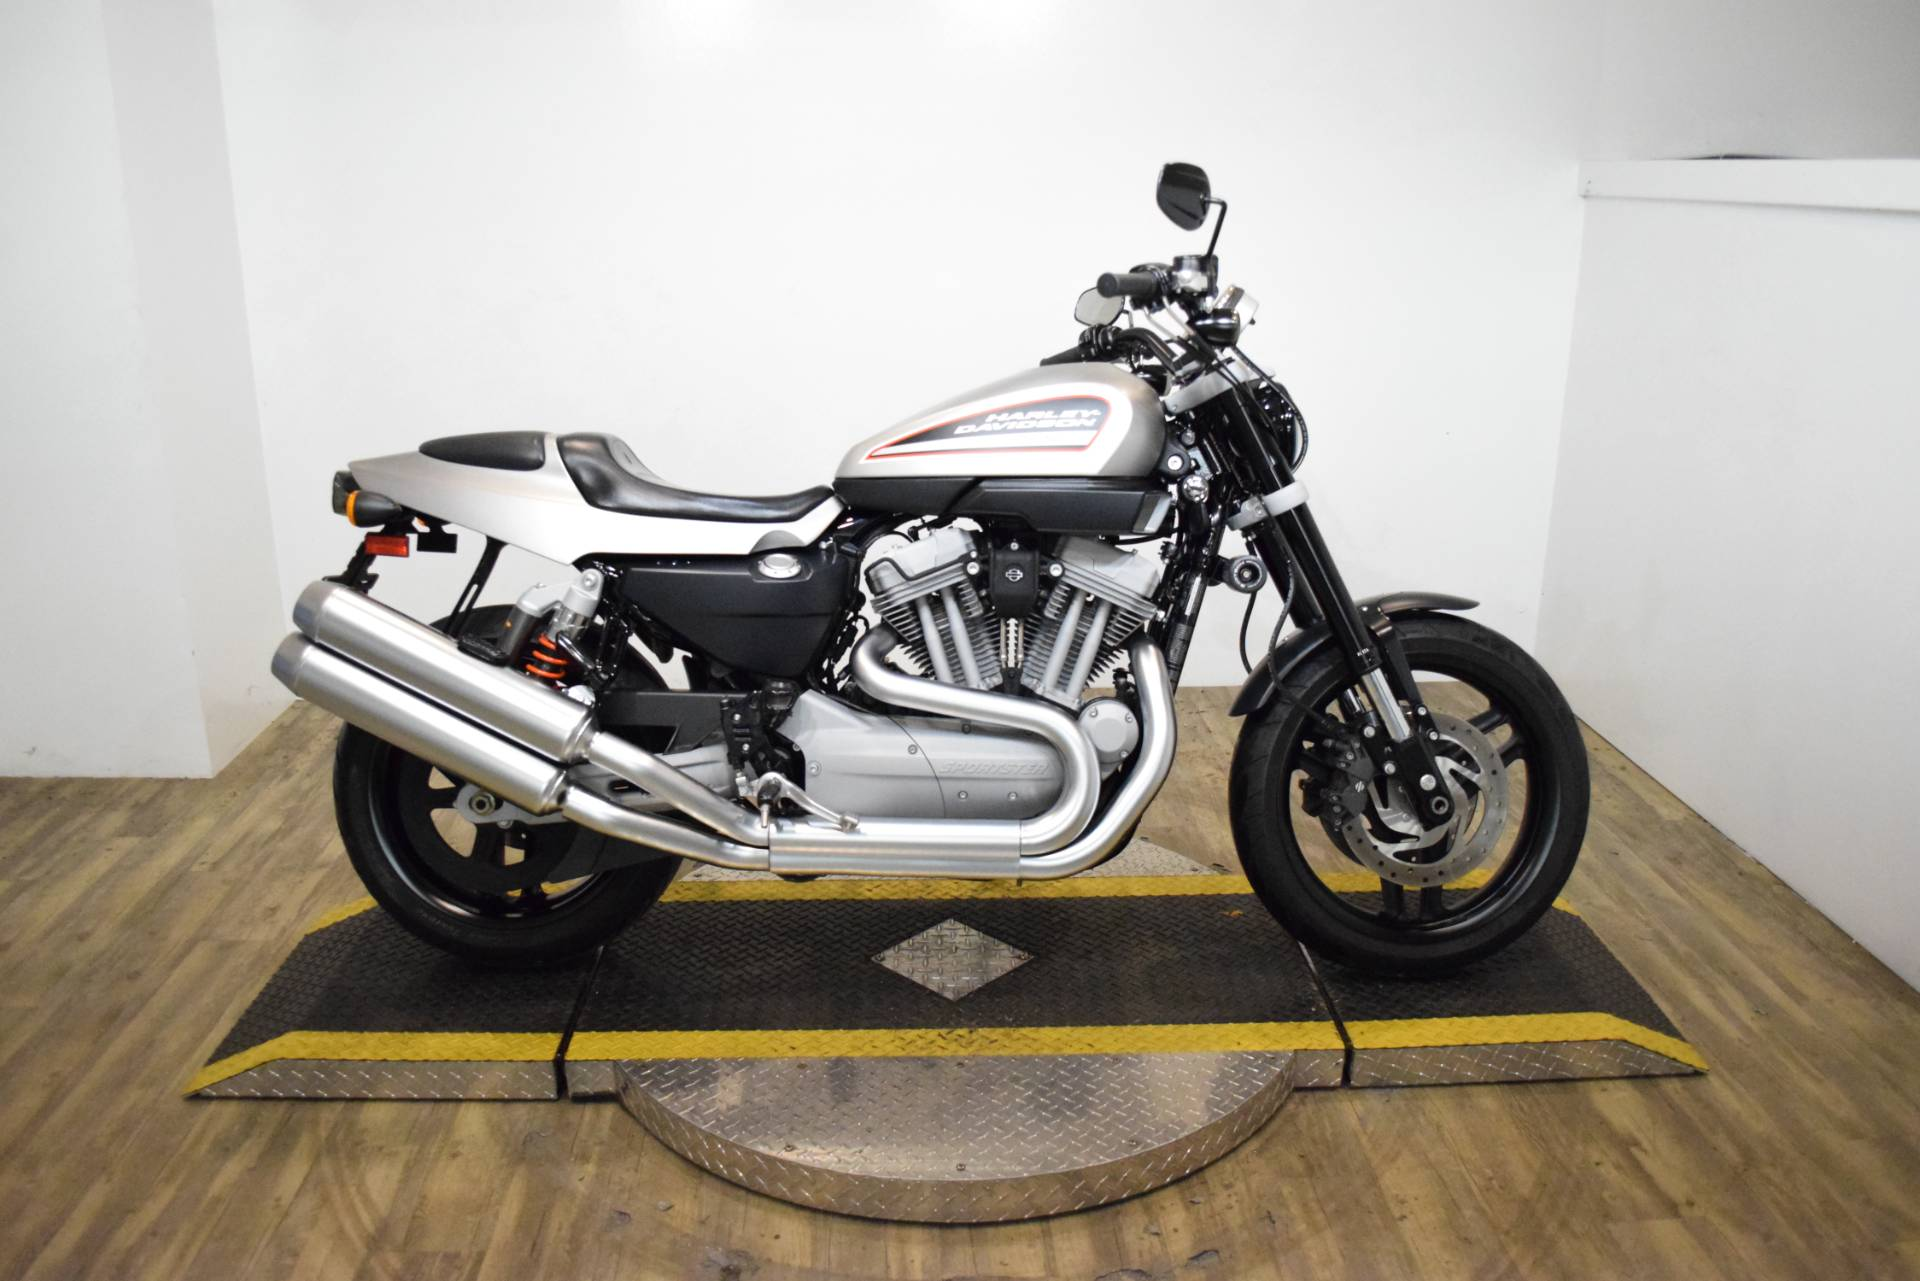 2009 Harley-Davidson XR 1200 in Wauconda, Illinois - Photo 1